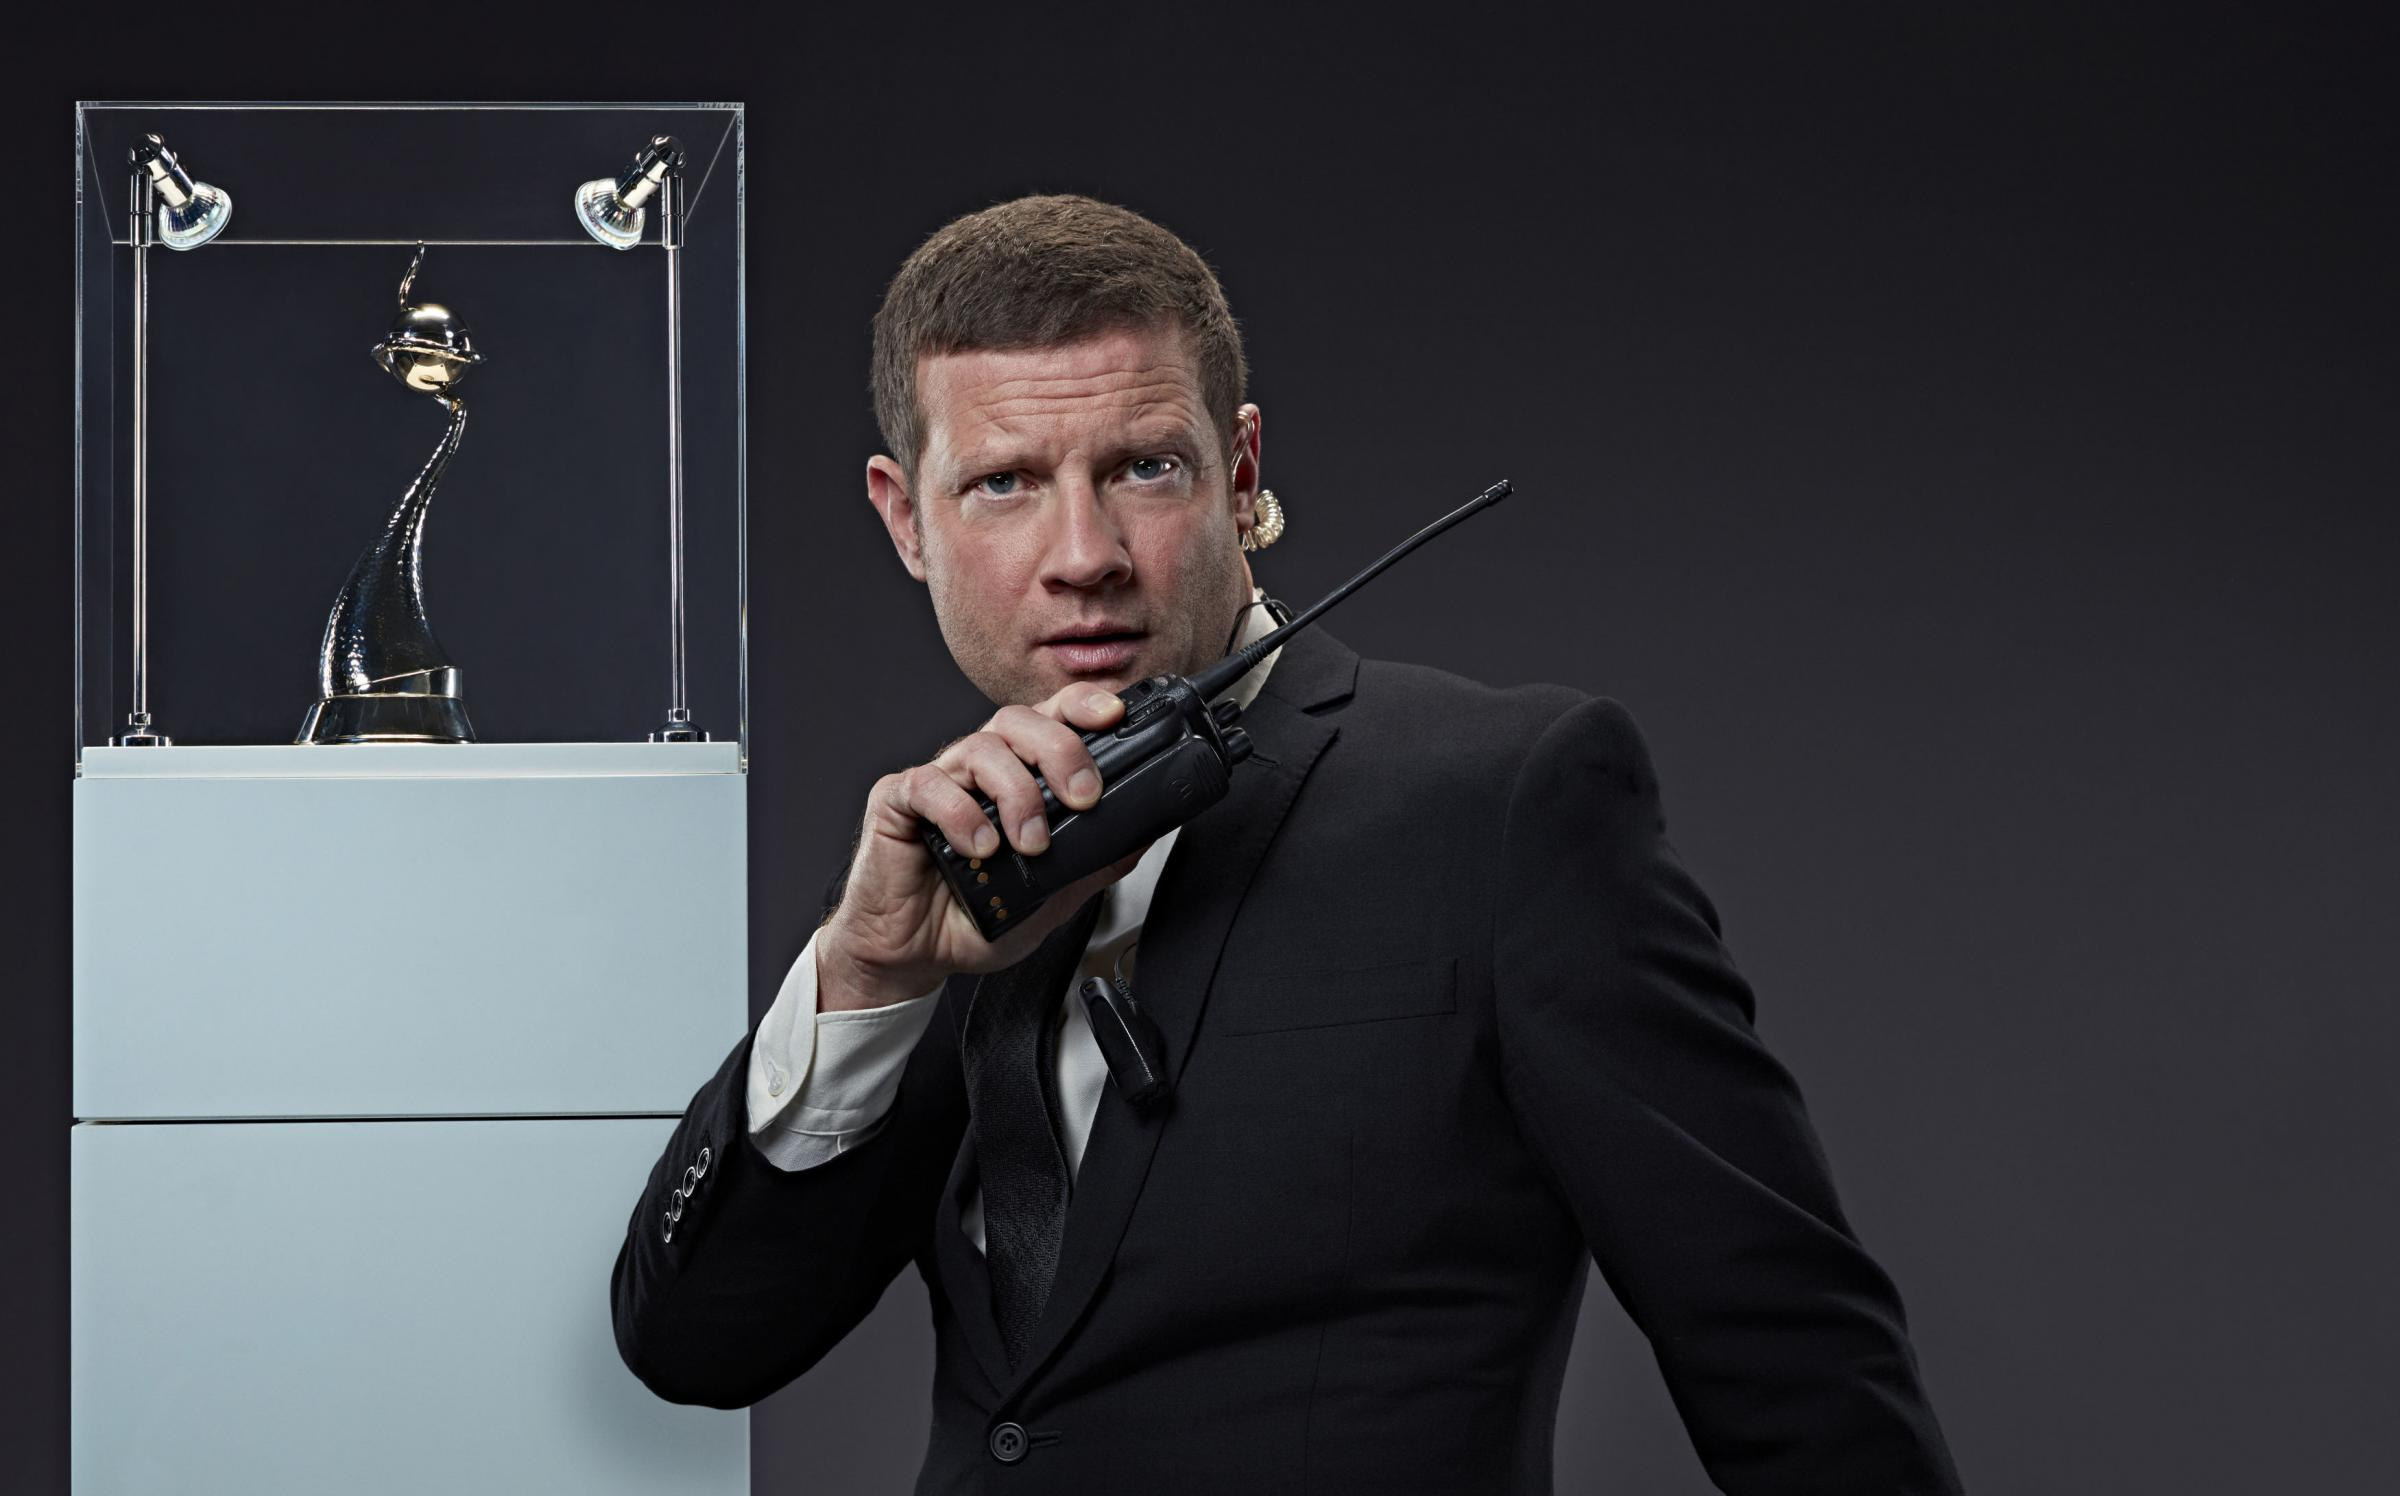 Presenter - Dermot will be hosting the NTA's for the 10th year